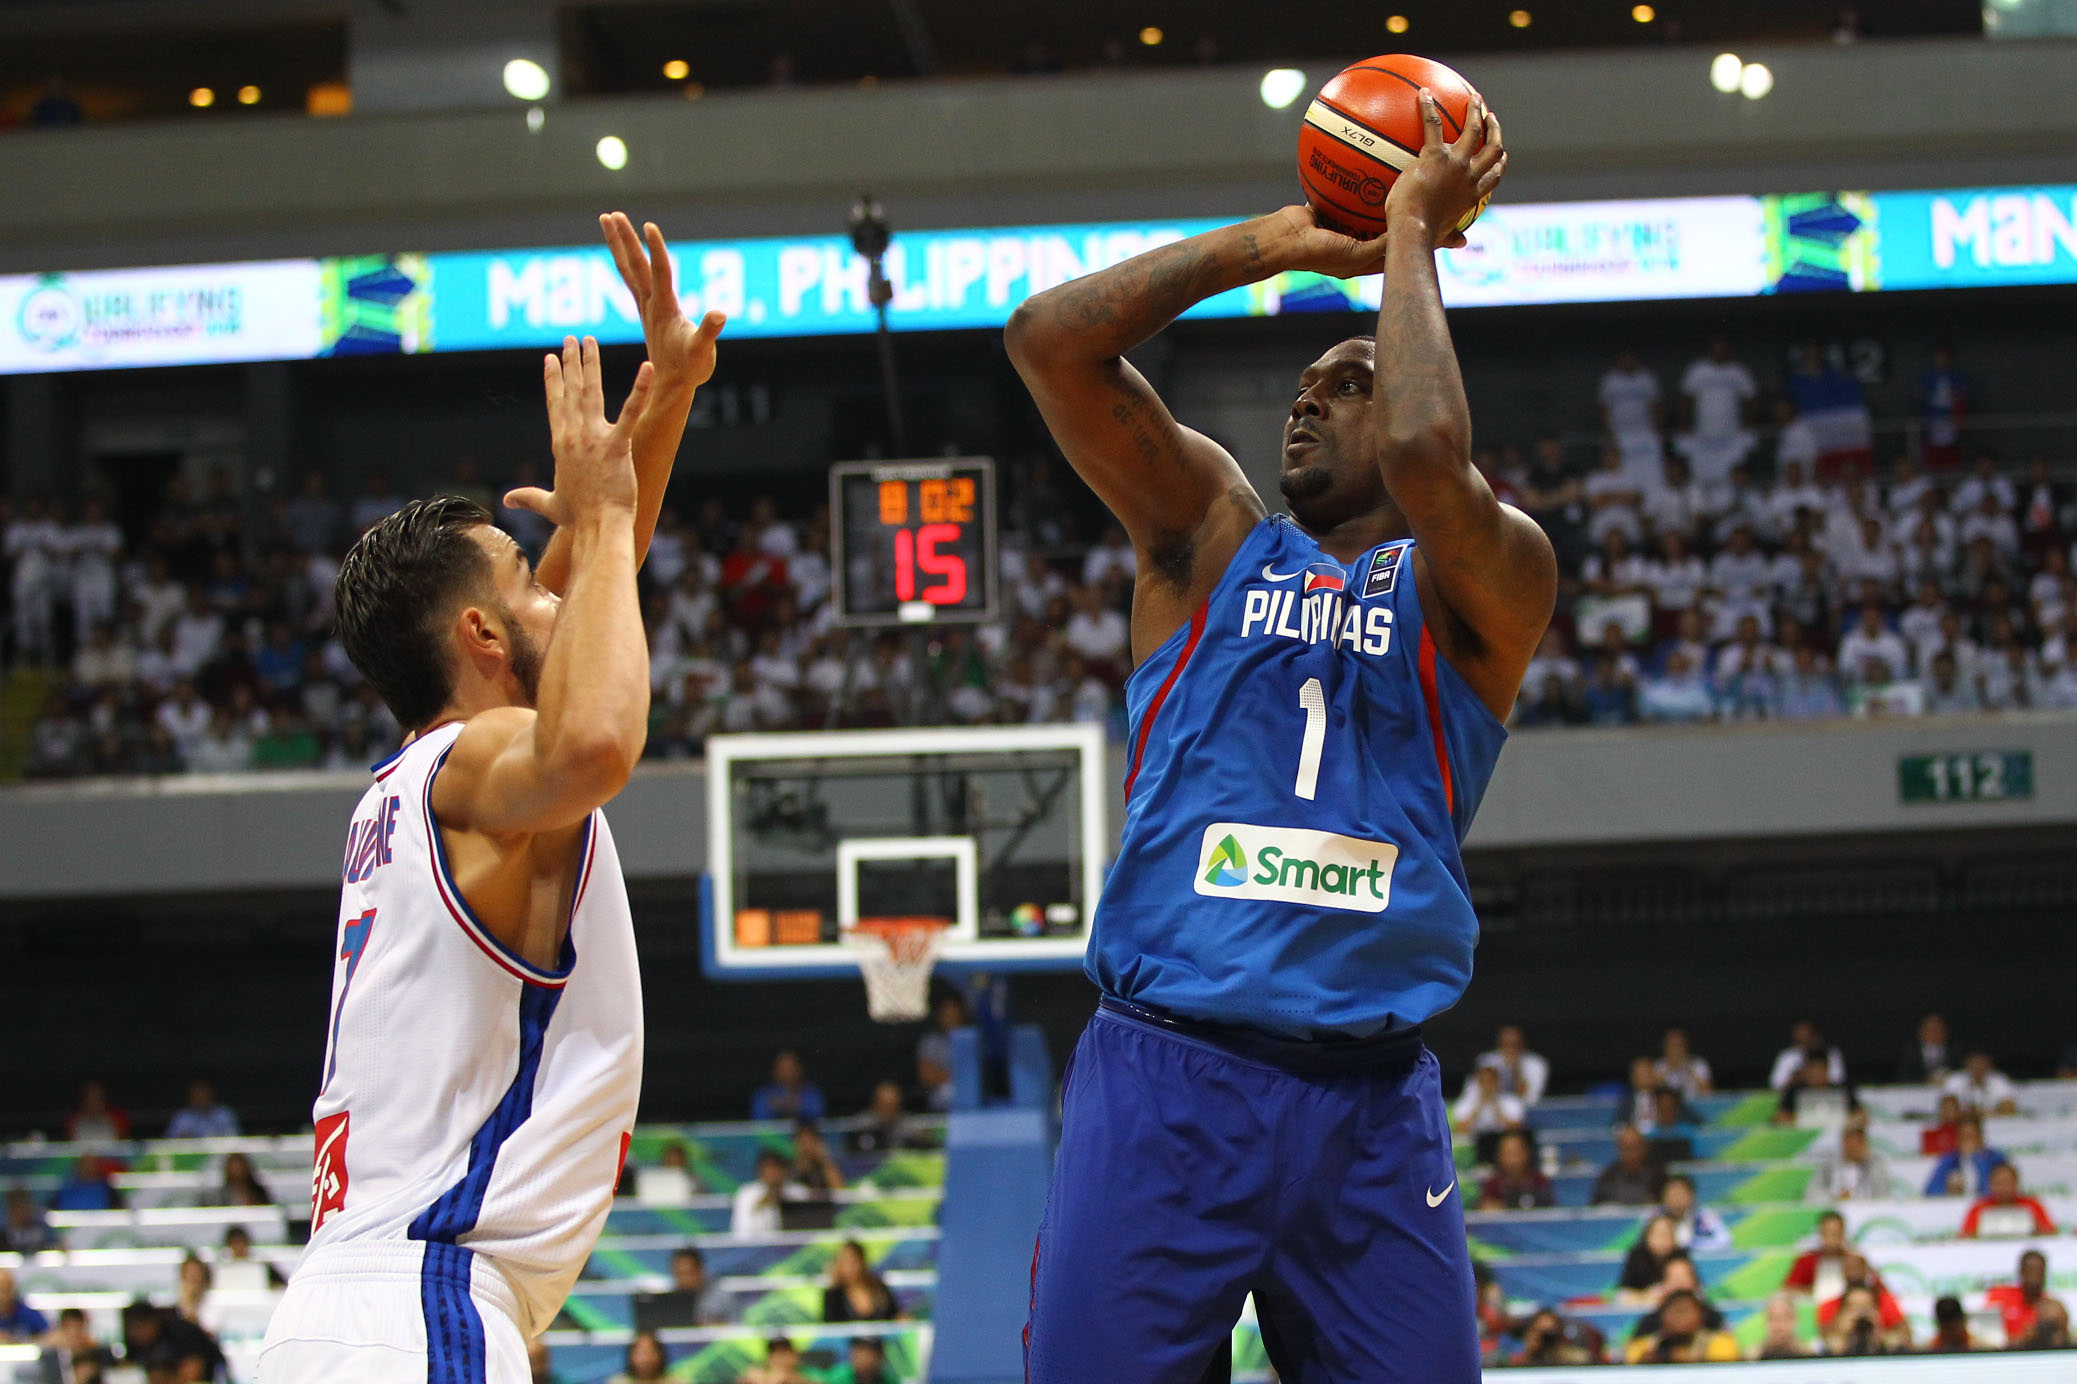 Andray Blatche sets up for a jump shot.